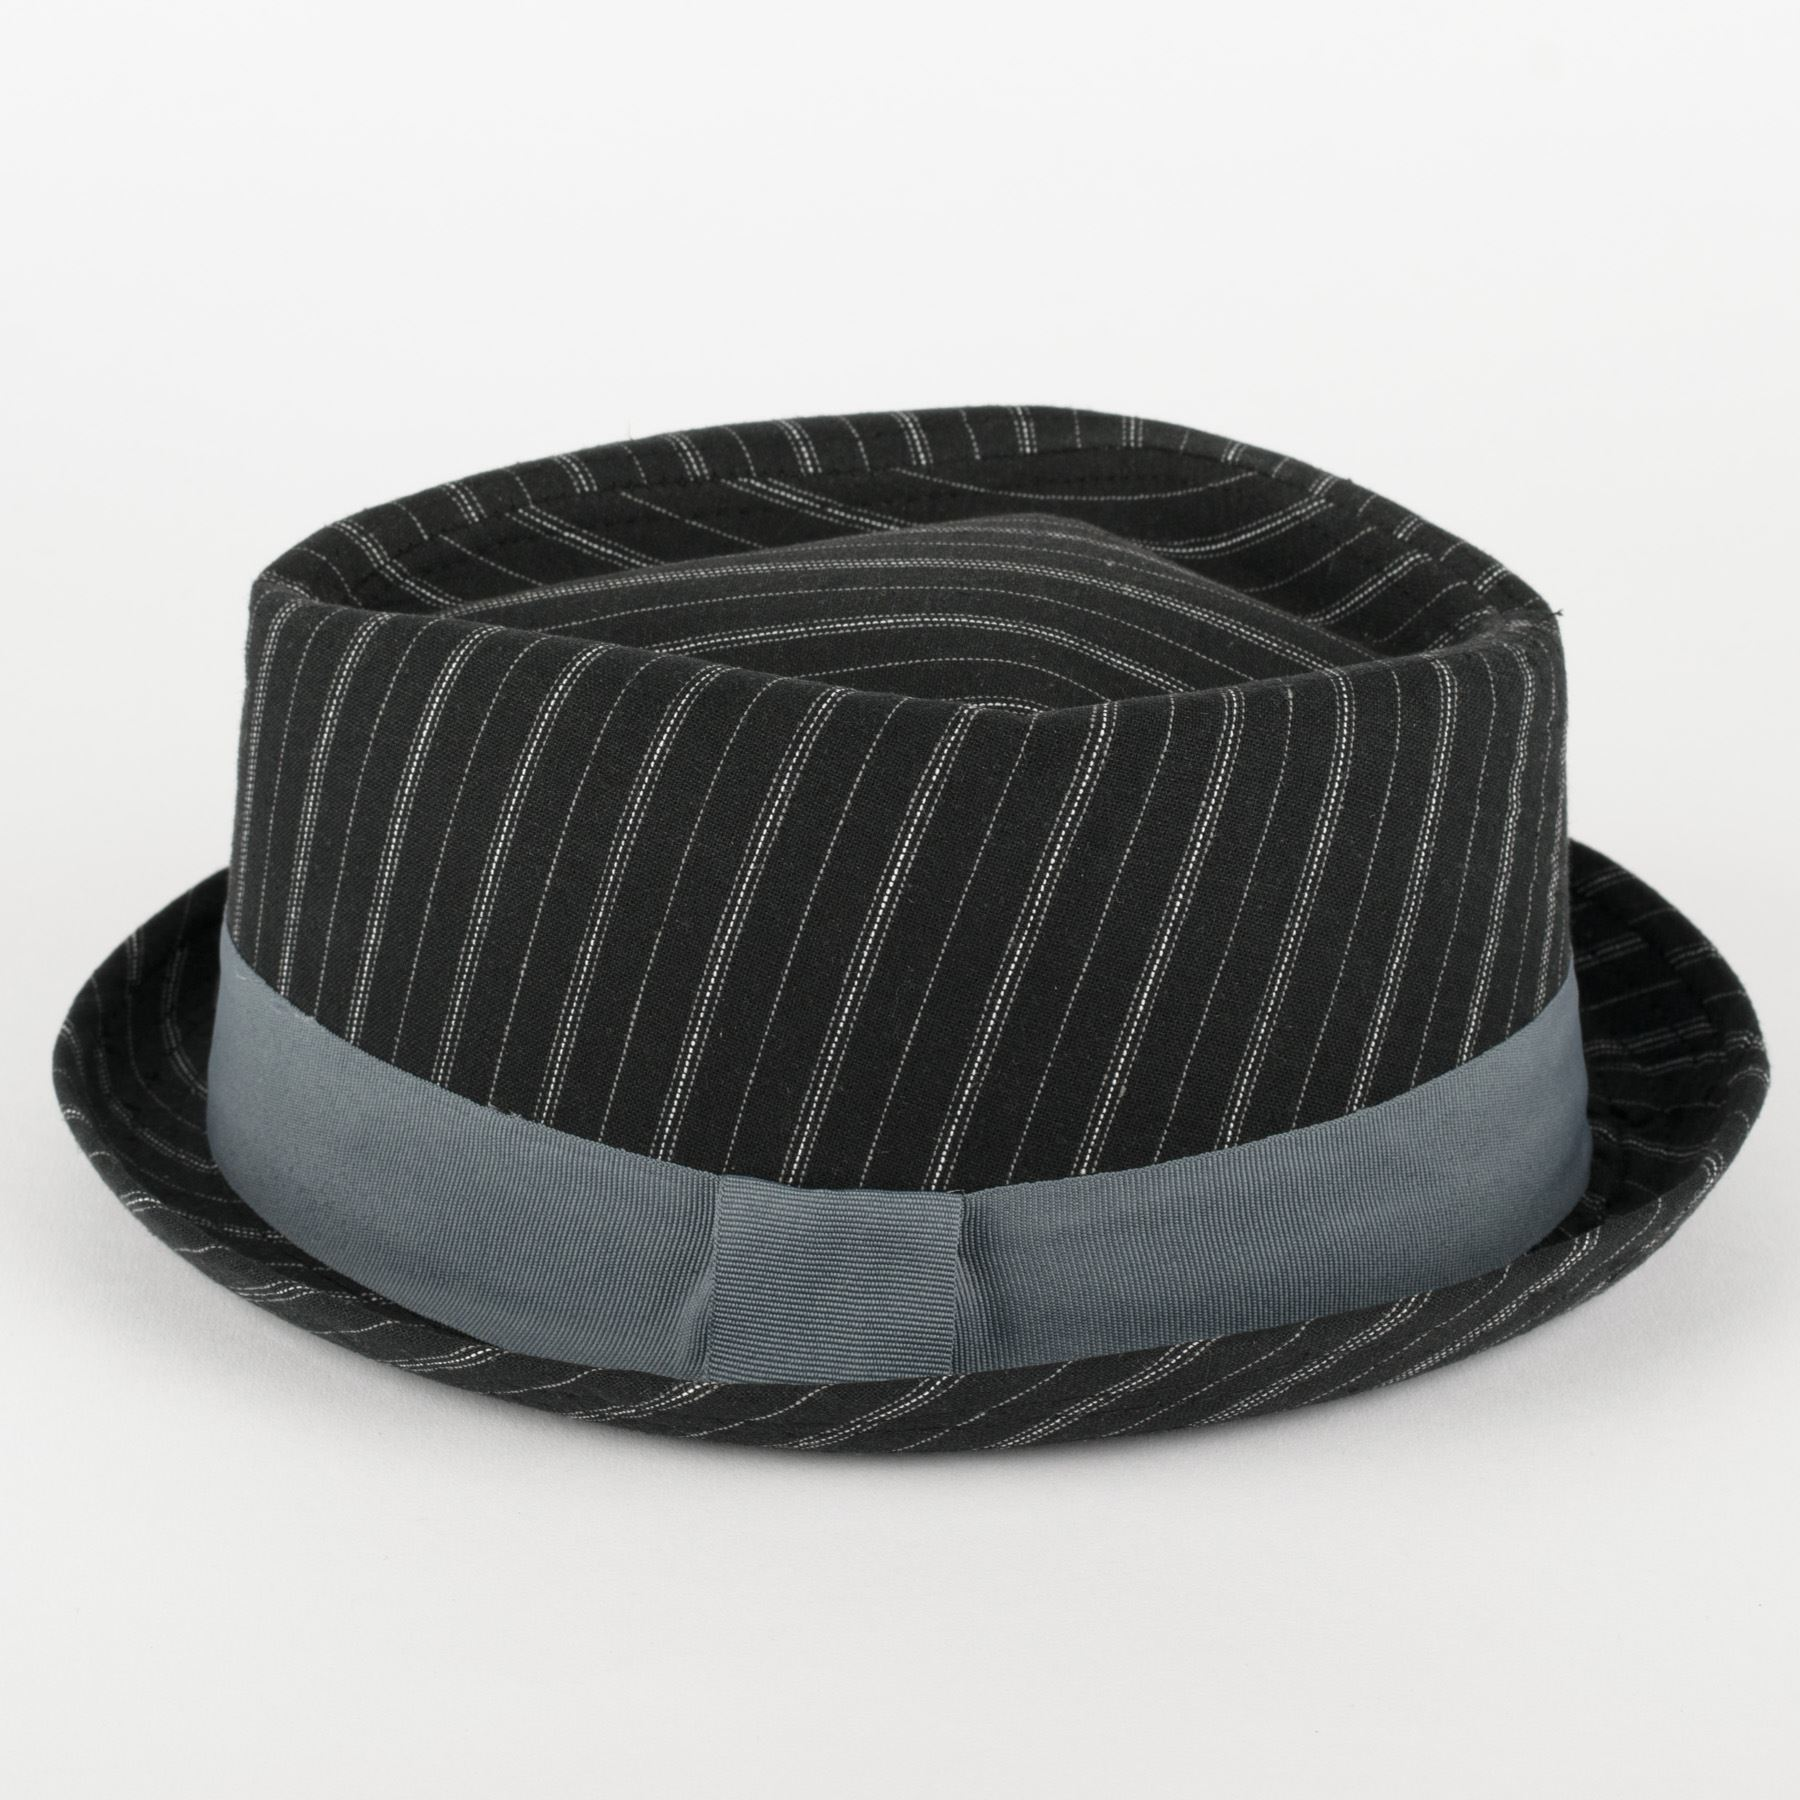 6be8d6719 Details about Diamond Shaped Pinstriped Summer Pork Pie Hat